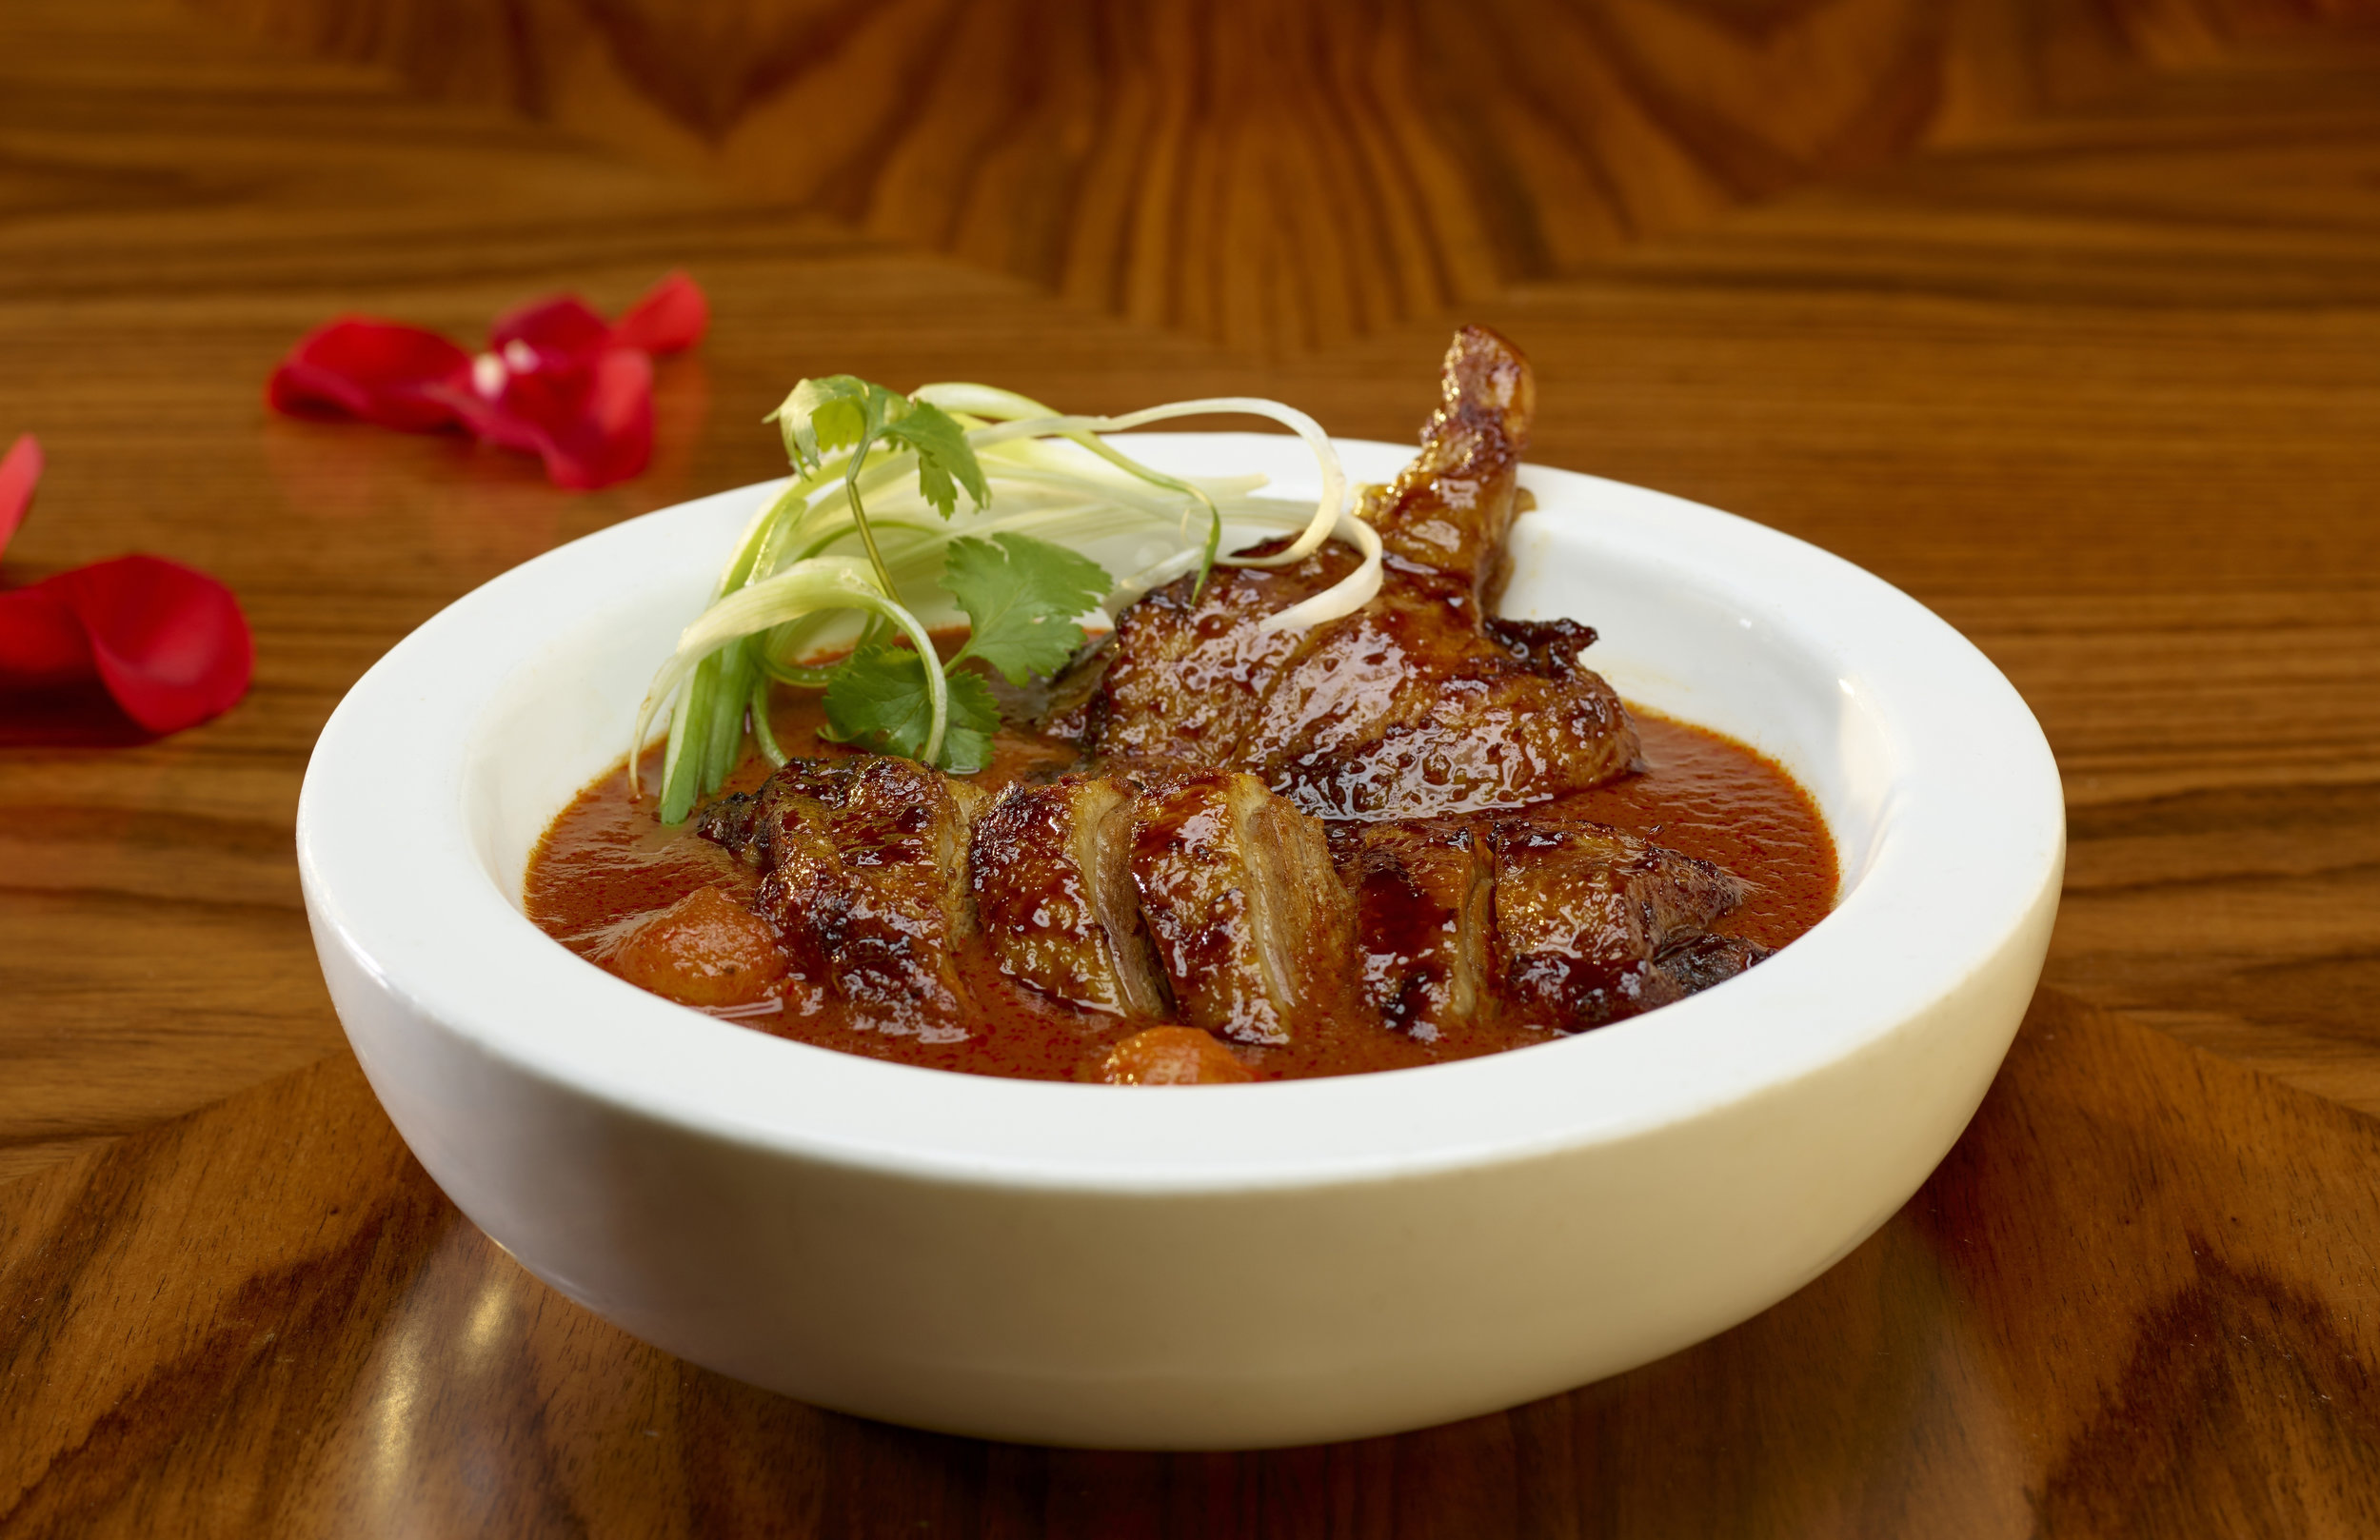 Veeraswamy Duck Vindaloo RB A3632_-0116.jpg cropped.jpg